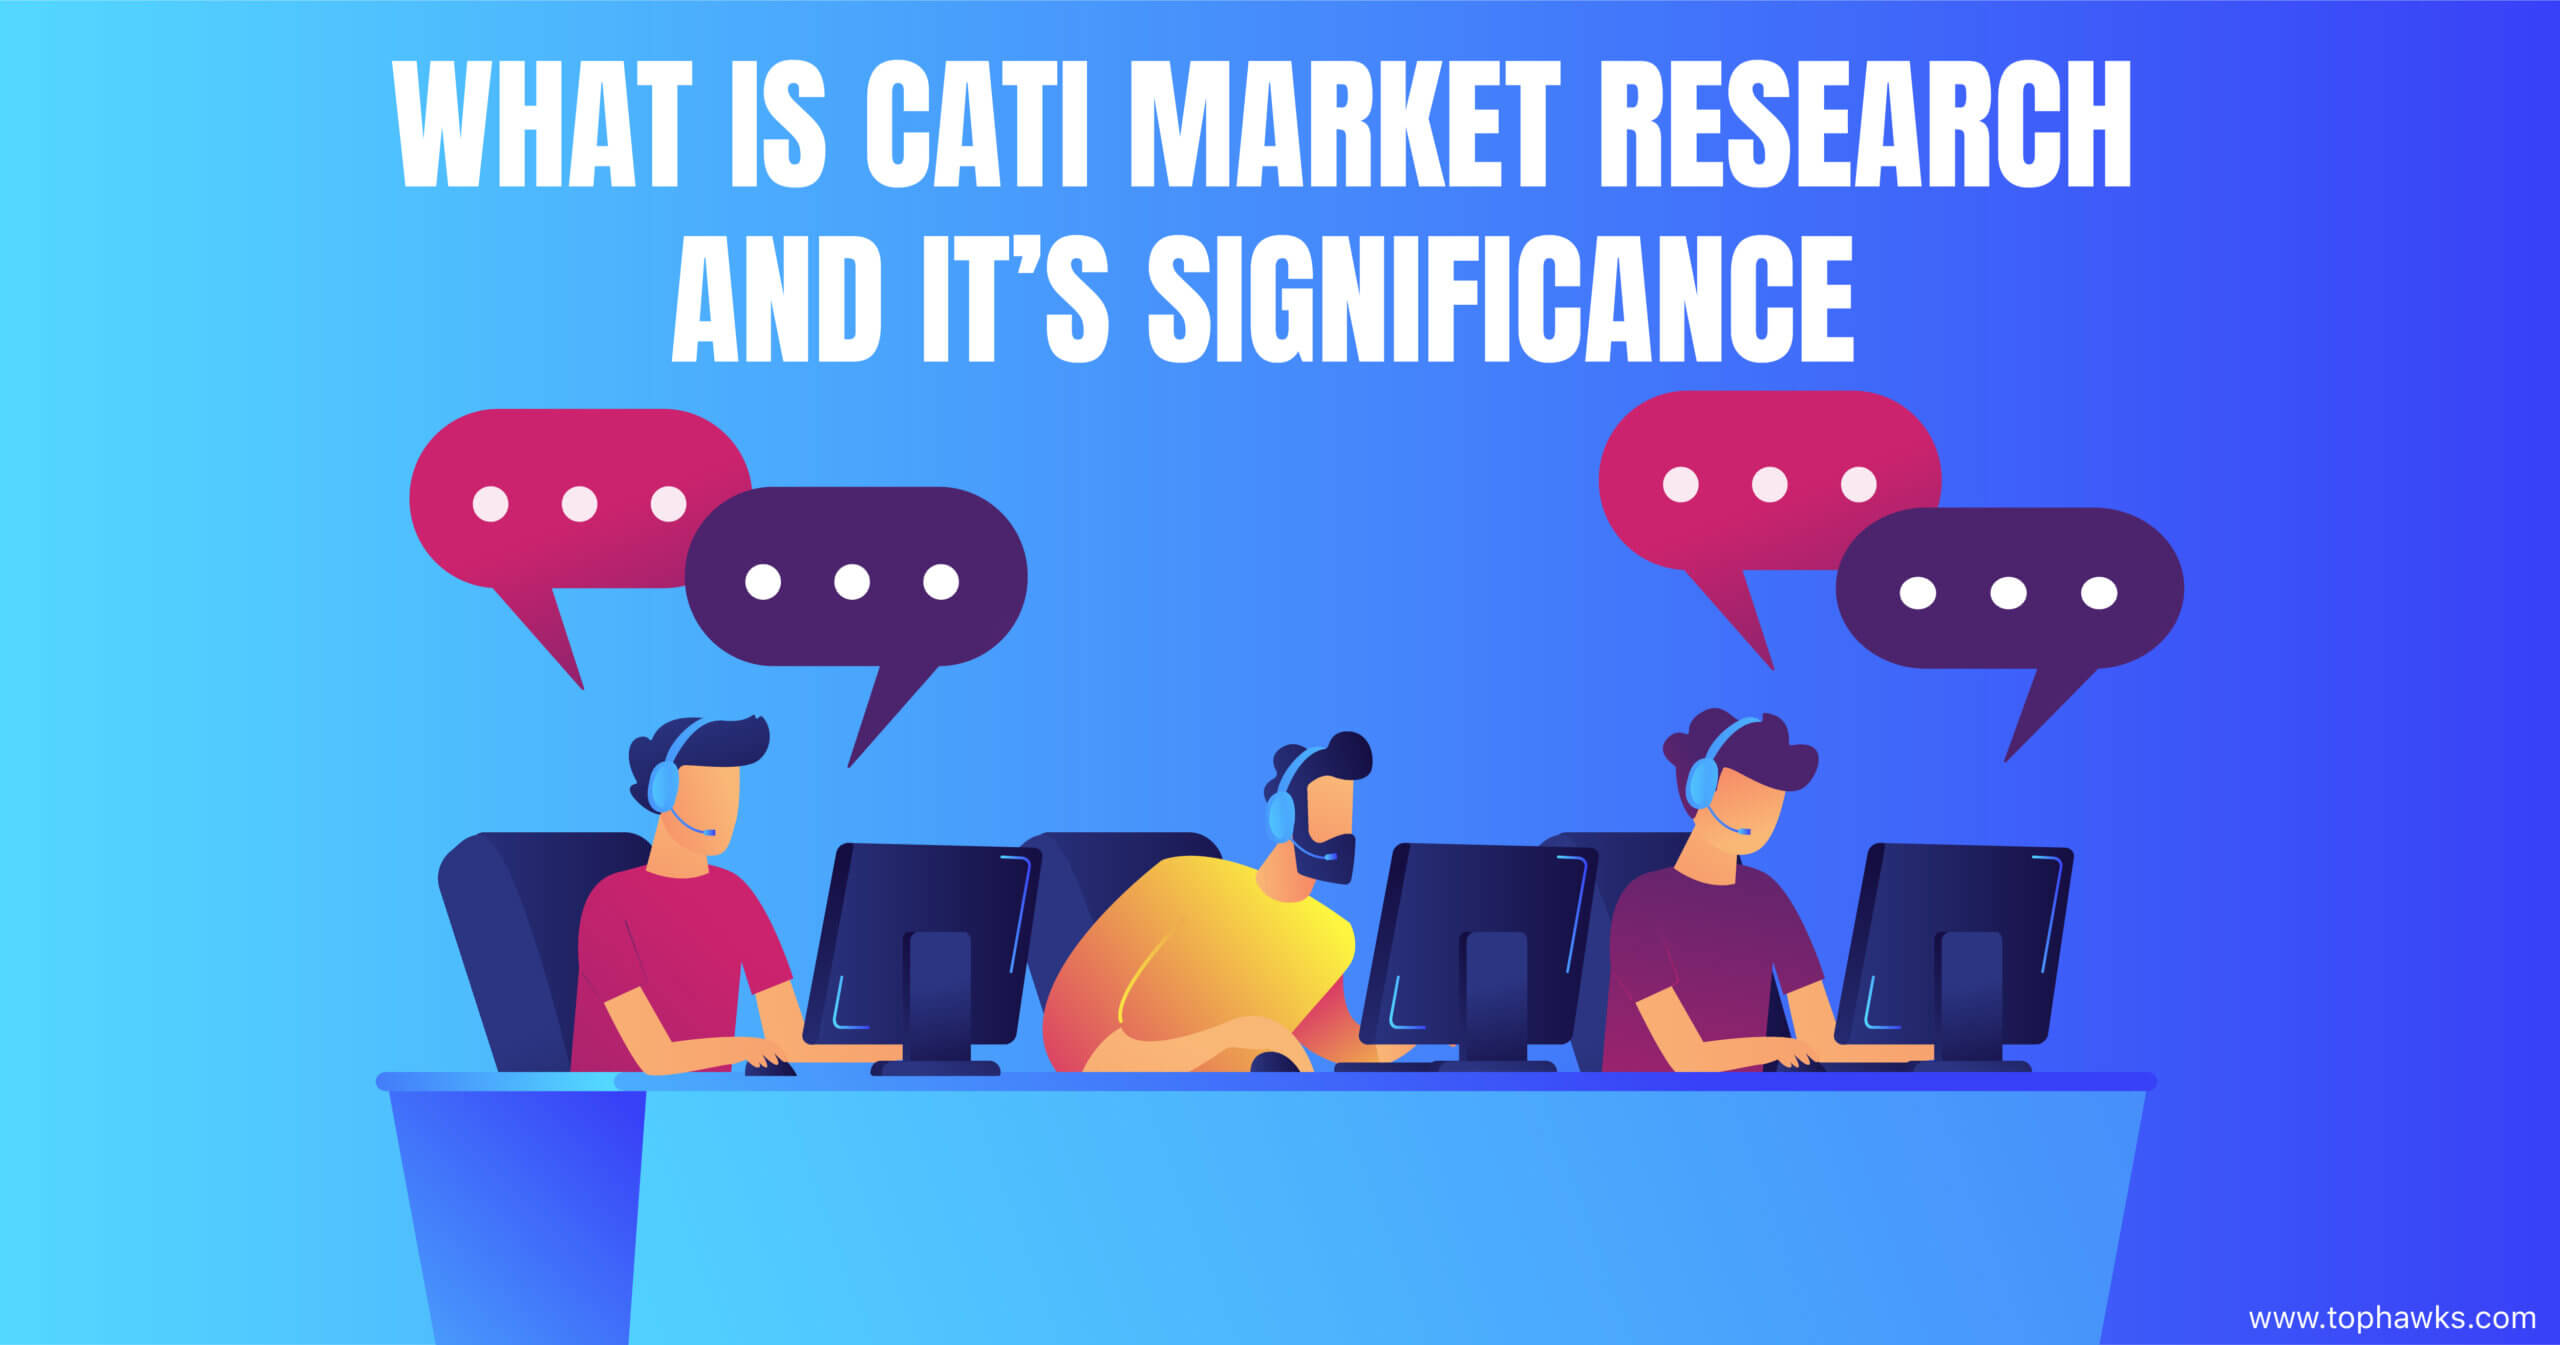 What is CATI market research and its significance?